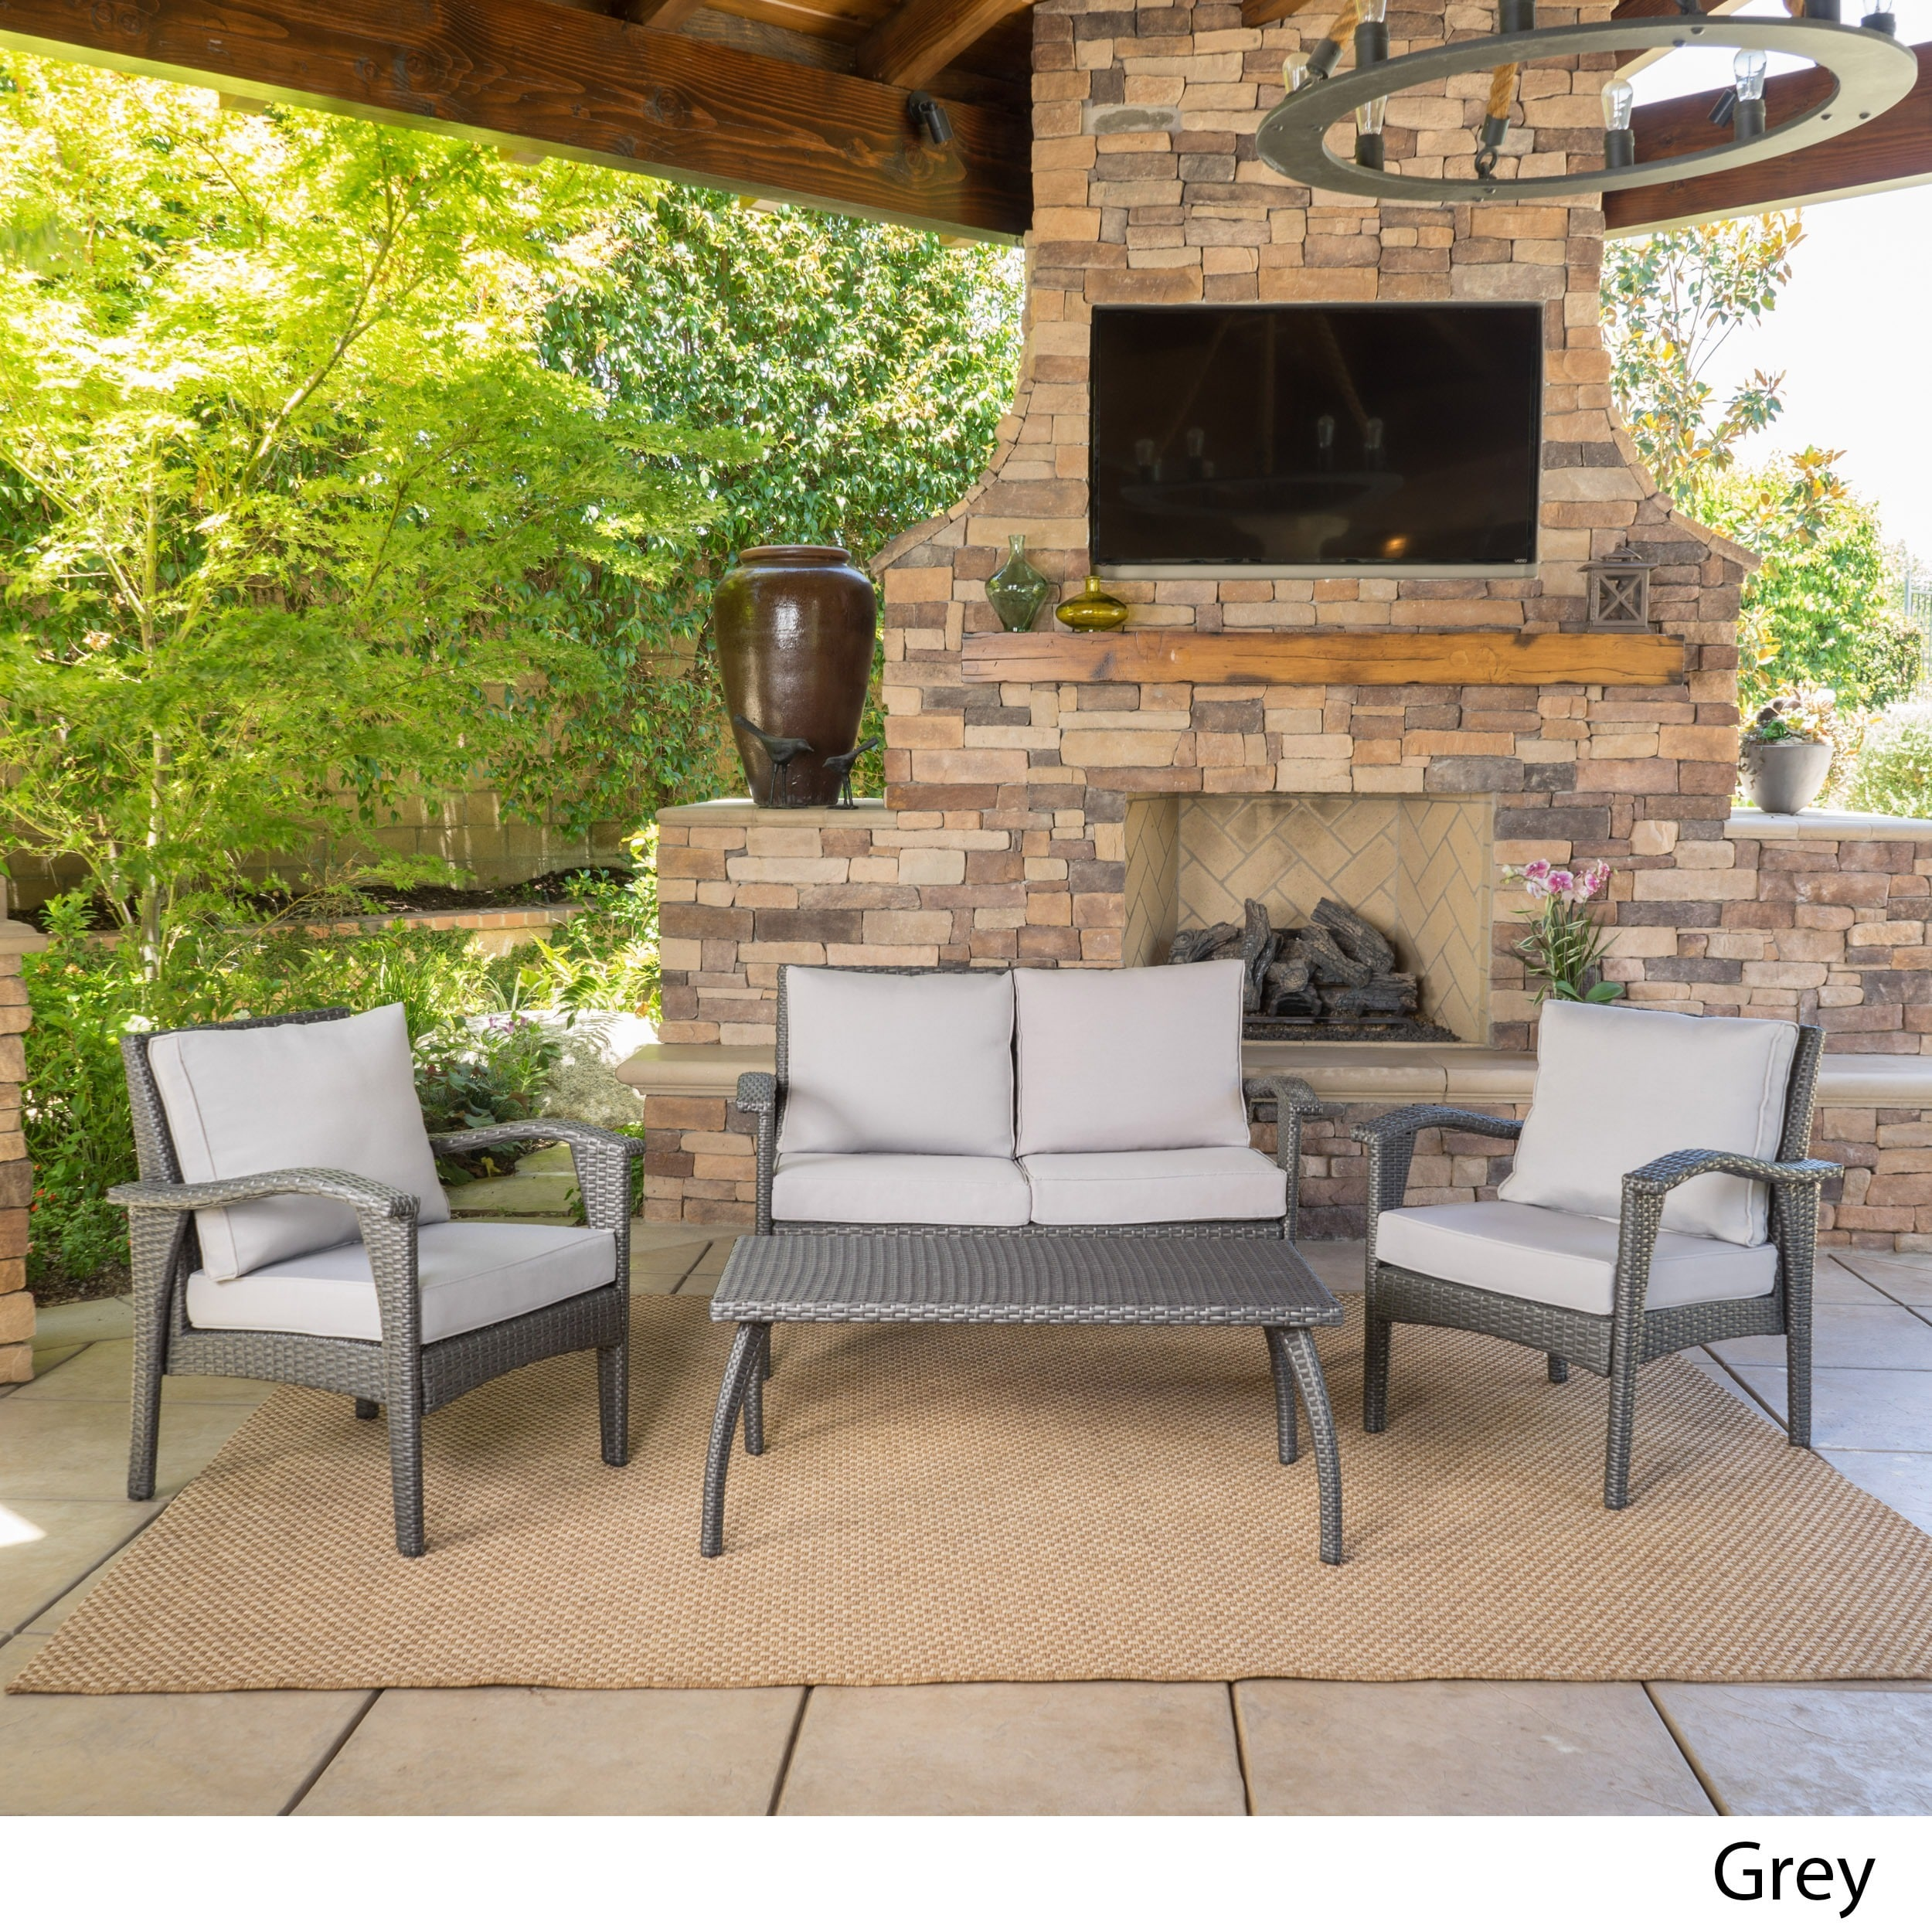 4 Piece Cushioned Wicker Seating Set